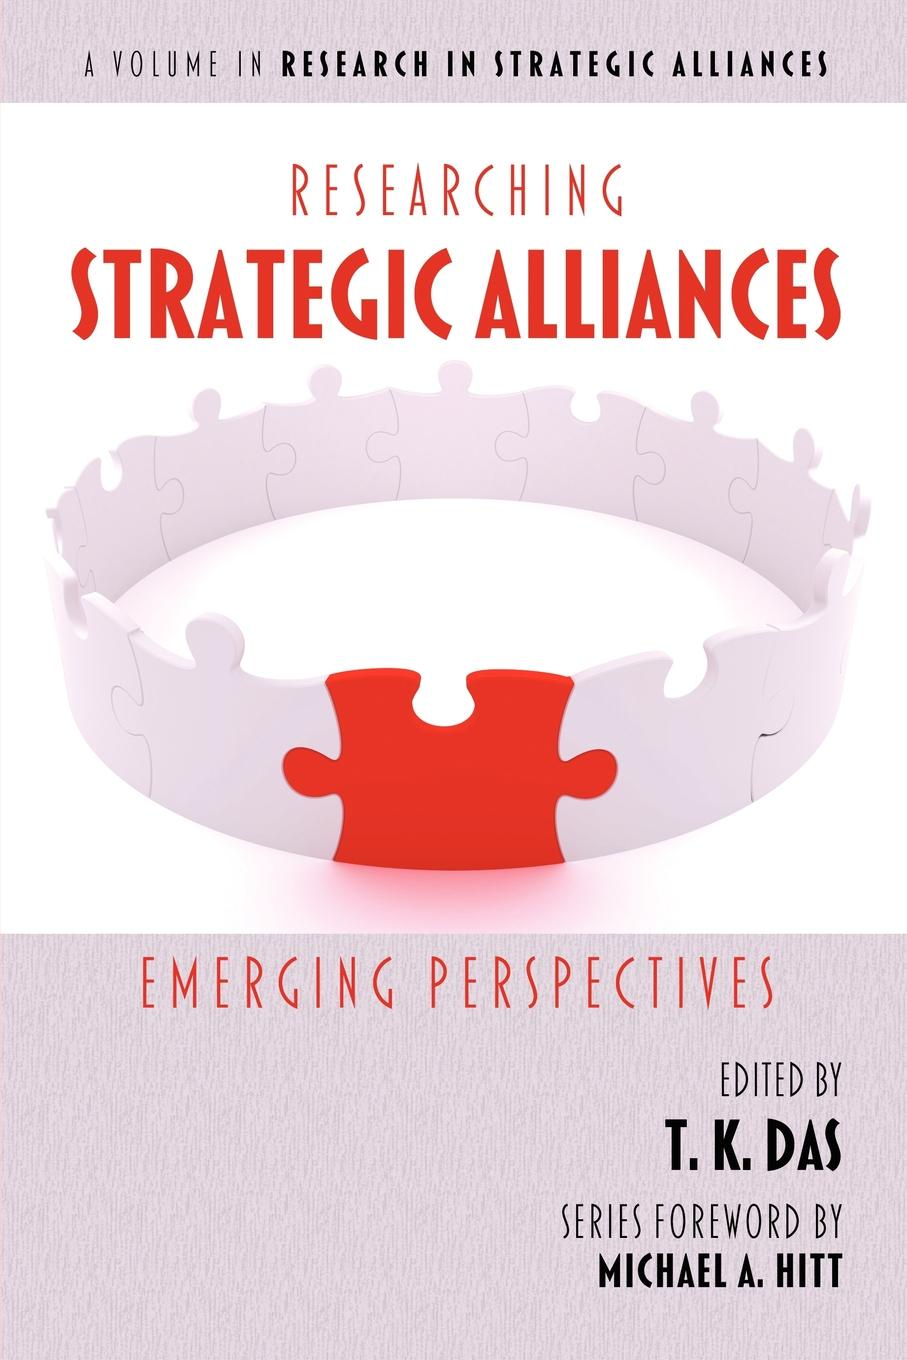 Researching Strategic Alliances. Emerging Perspectives (PB) parmod kumar literature and marginality emerging perspectives in dalit literature